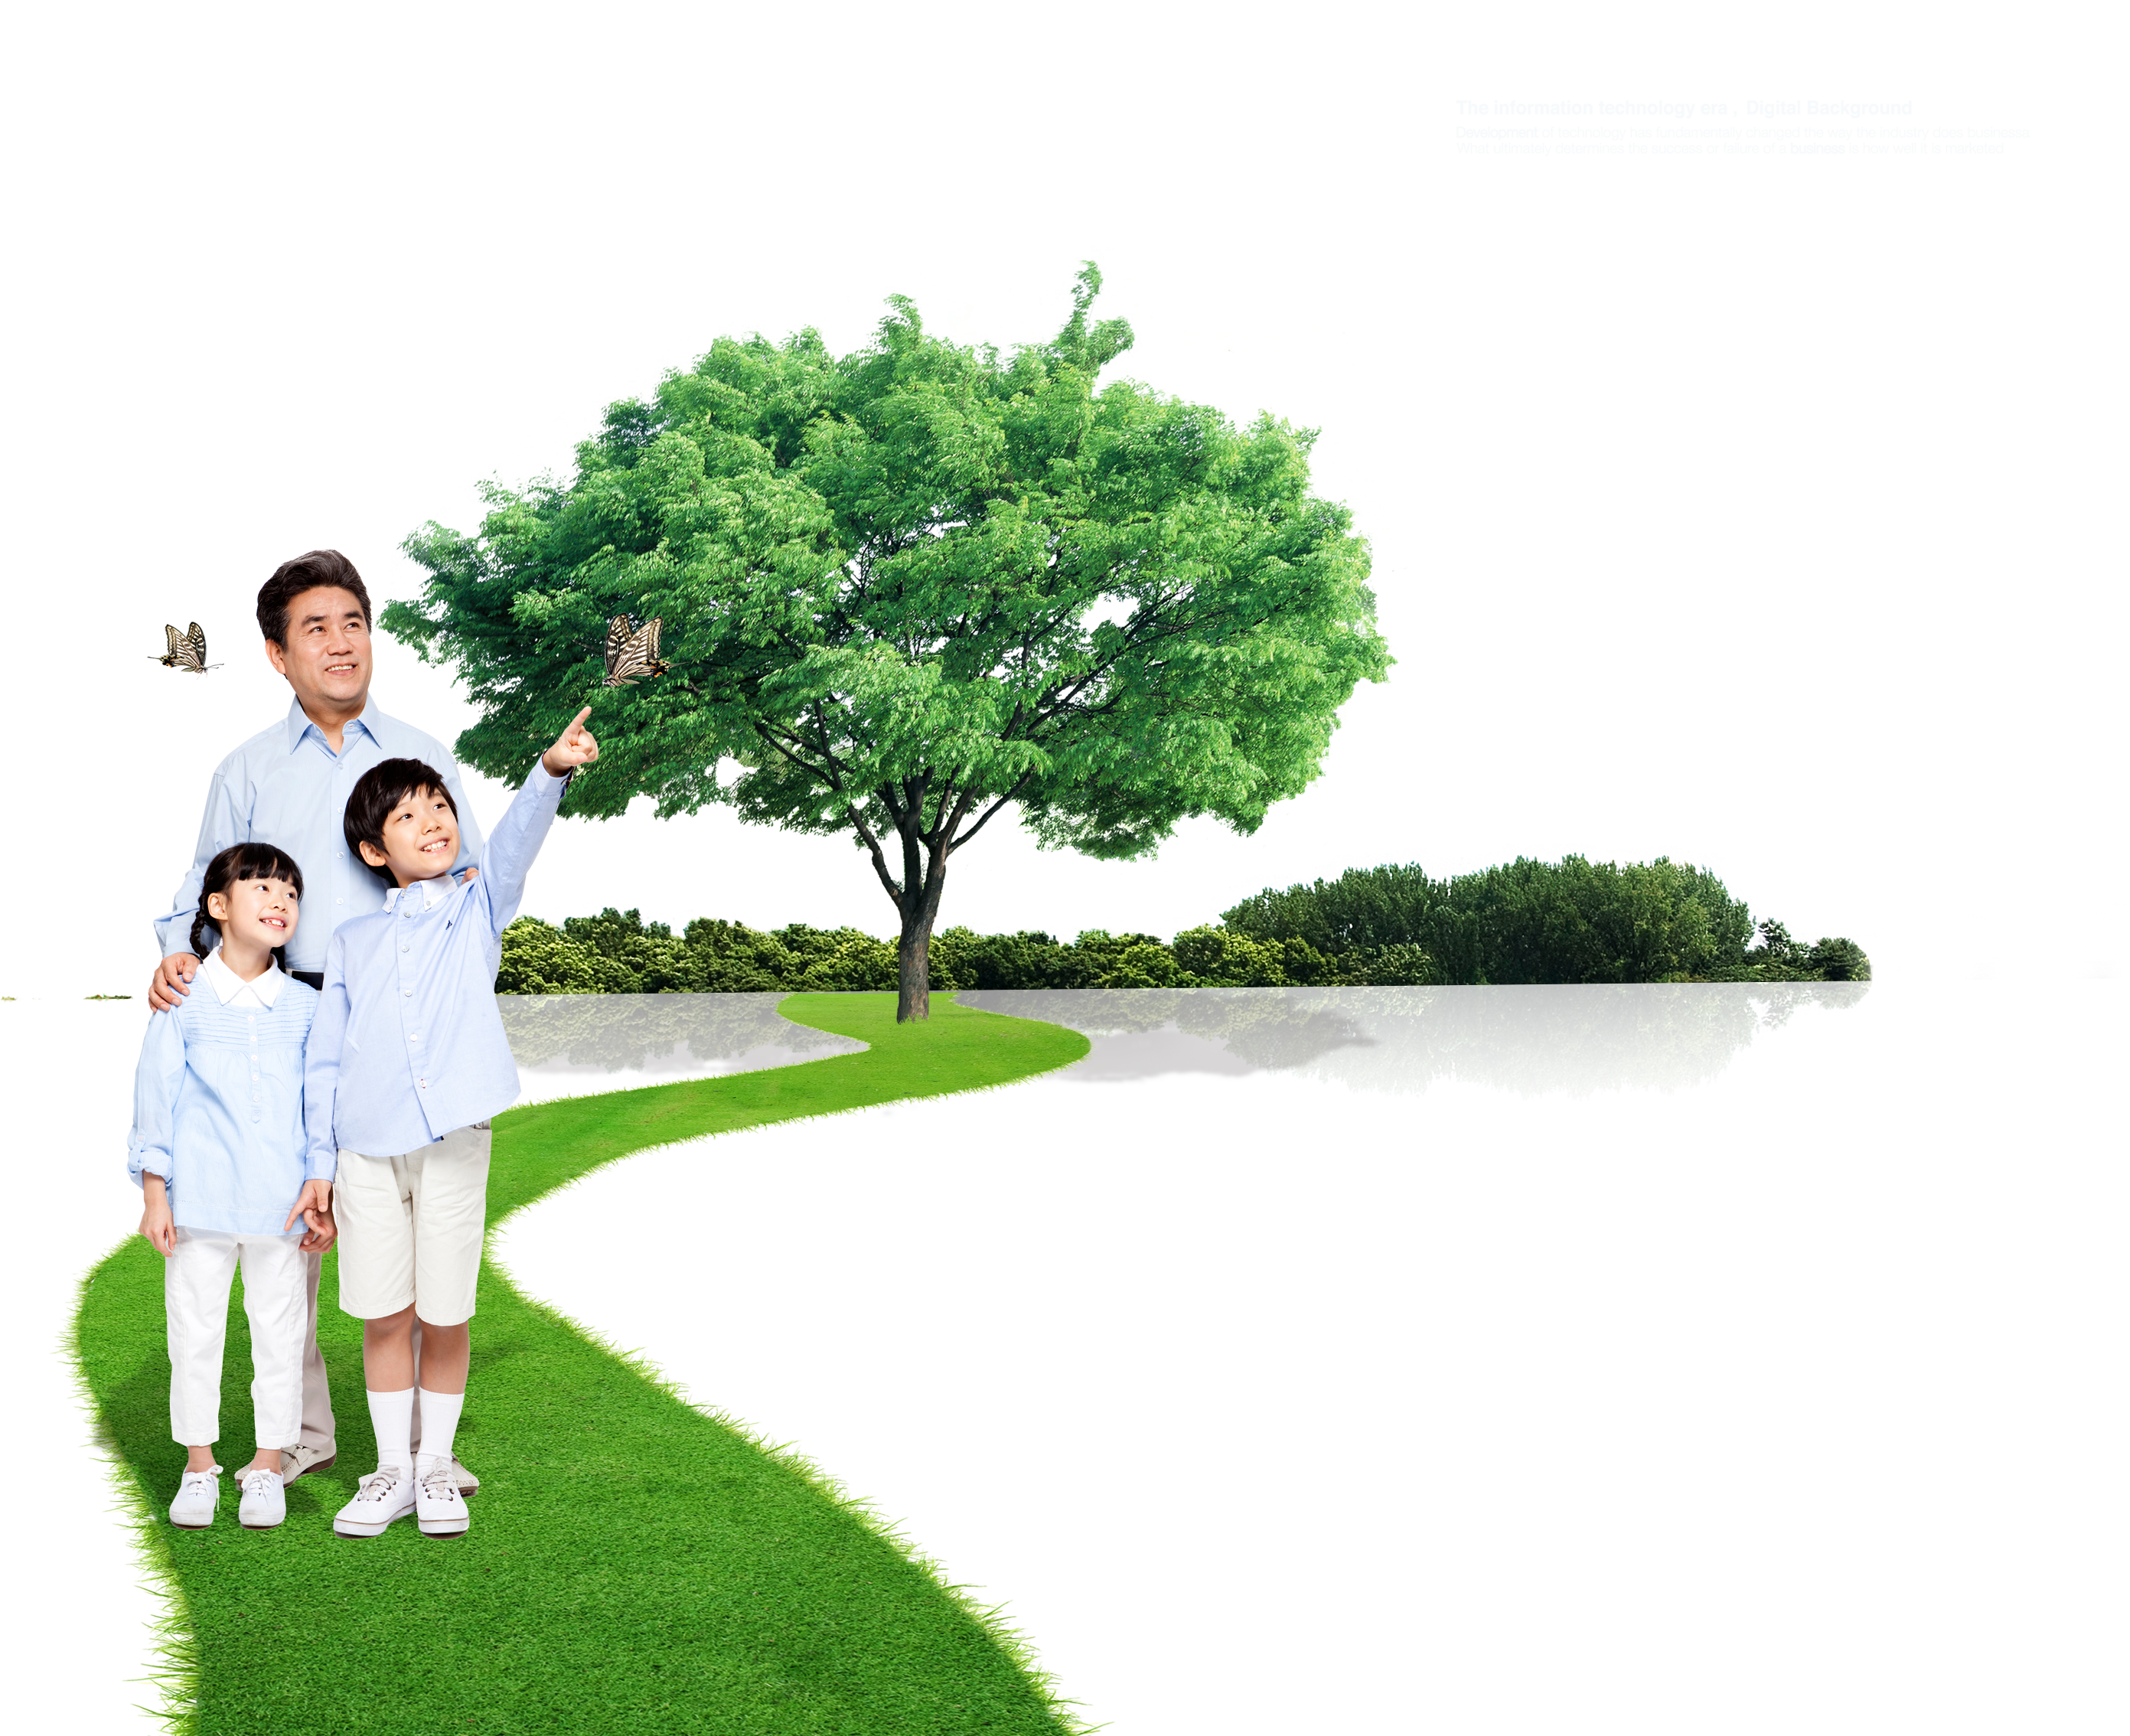 Lawn vector tree grass. Family environmental protection technology